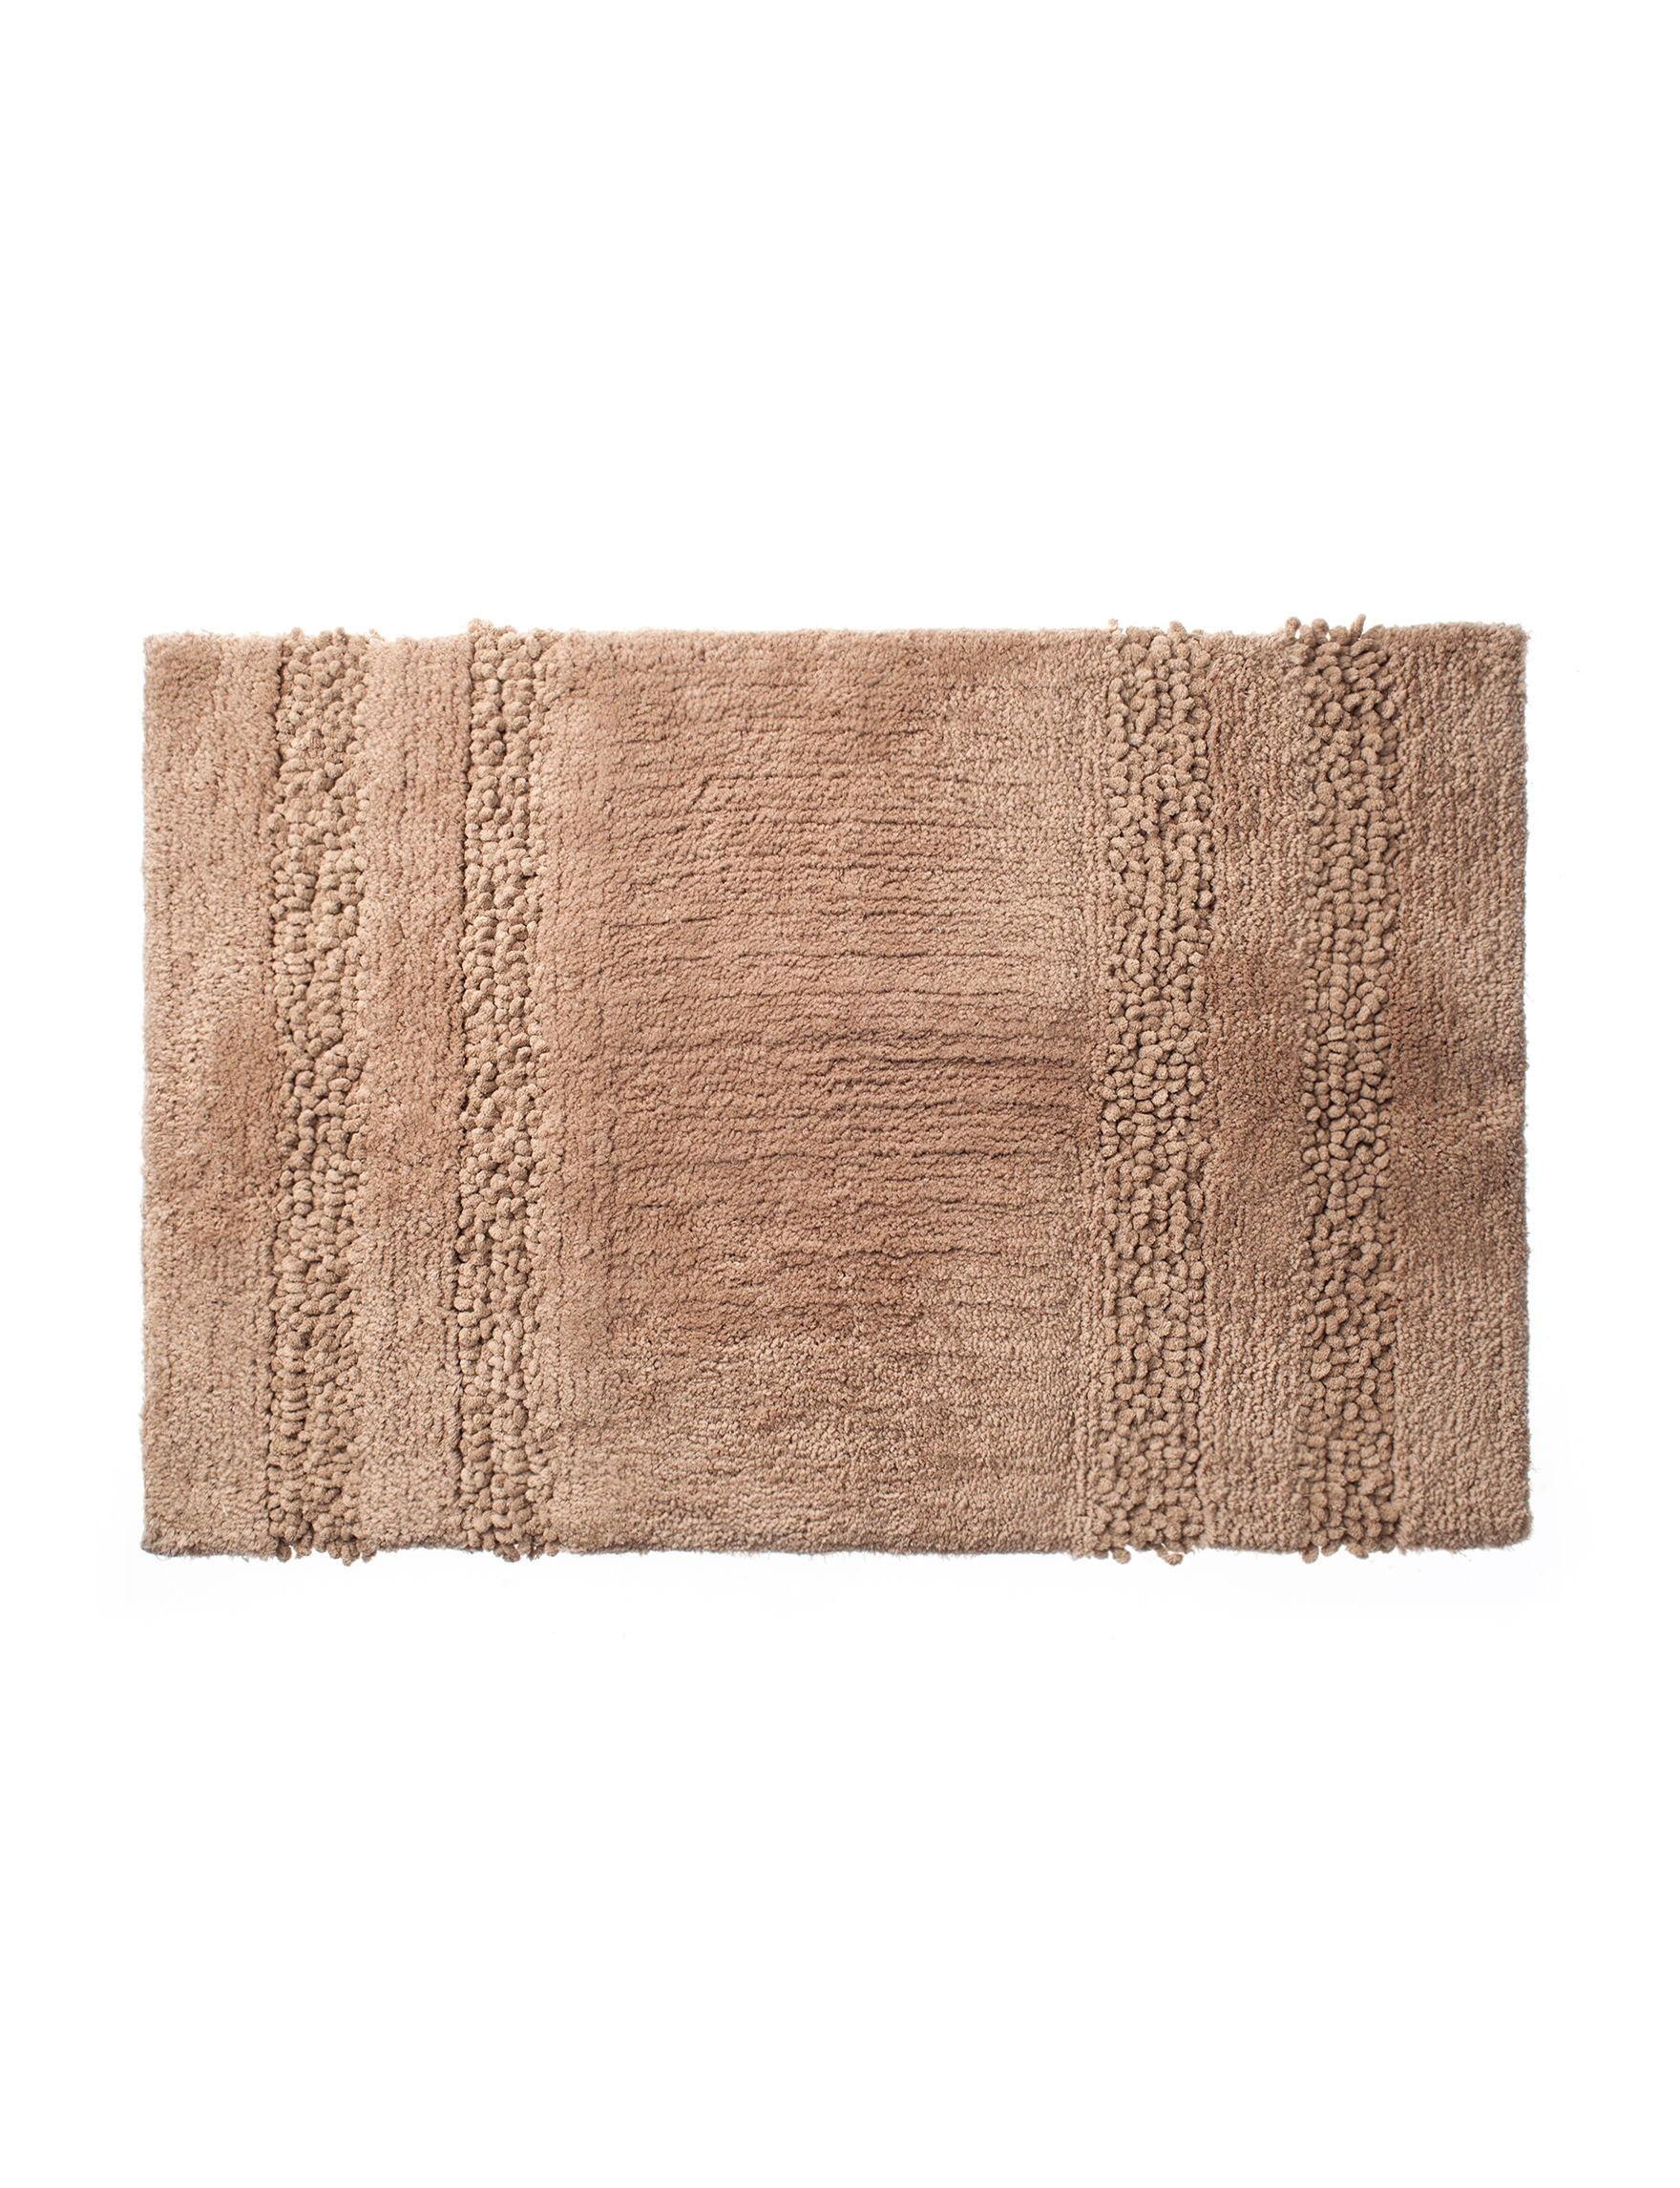 Great Hotels Collection Coffee Bath Rugs & Mats